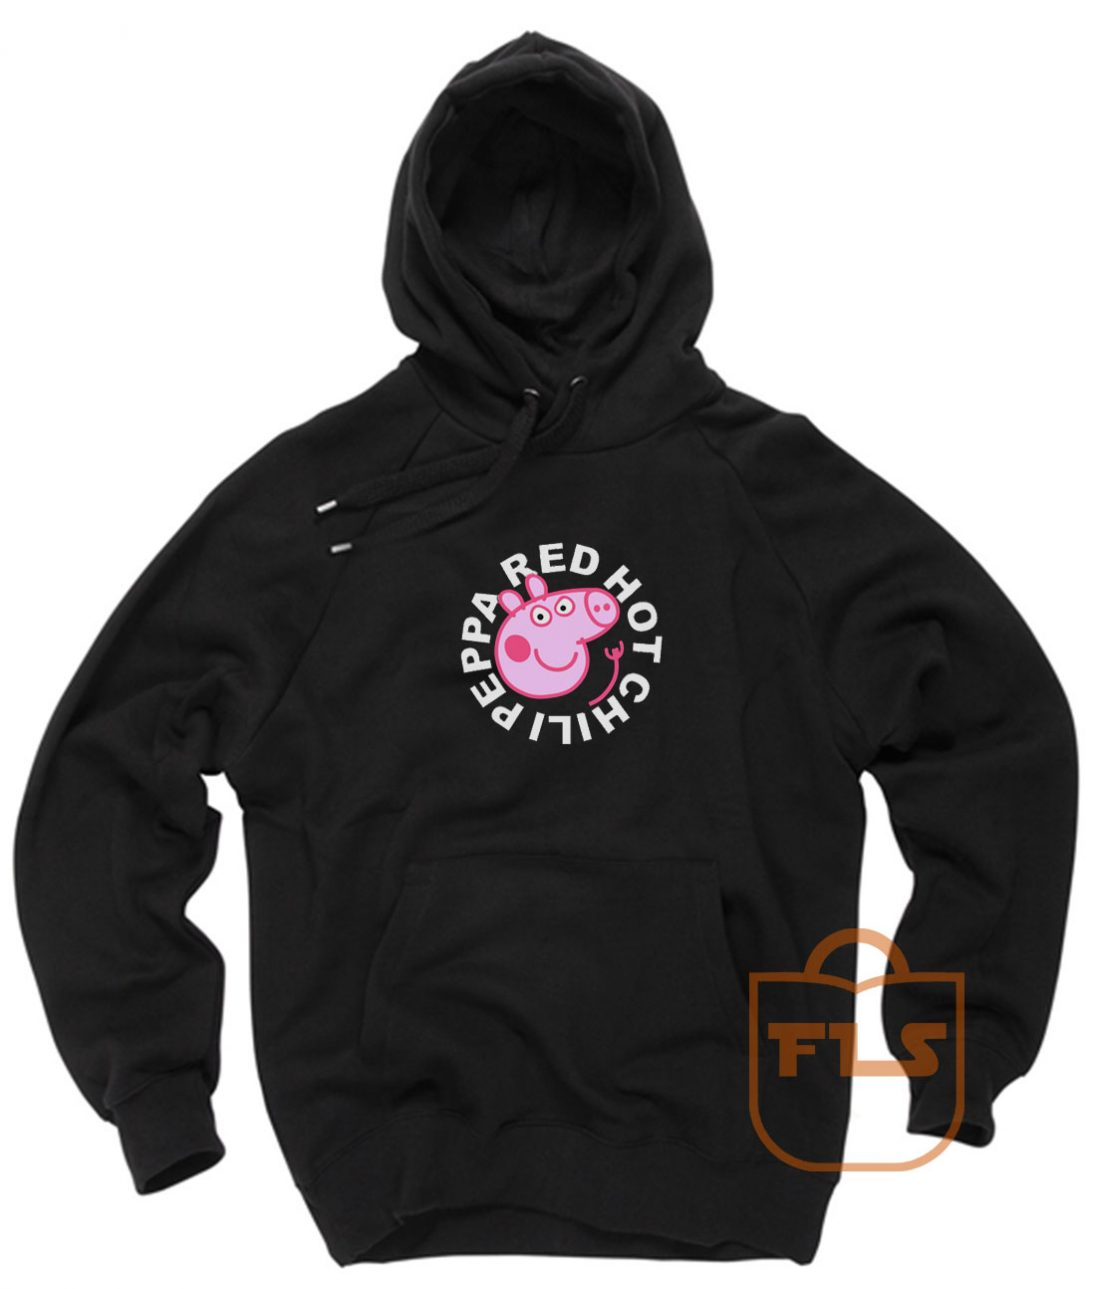 Red Hot Chili Peppa Pig RHCP Parody Hoodies Pullover, Red Hot Chili Peppa Pig, RHCP Peppa Pig, Red Hot Chili Pepper